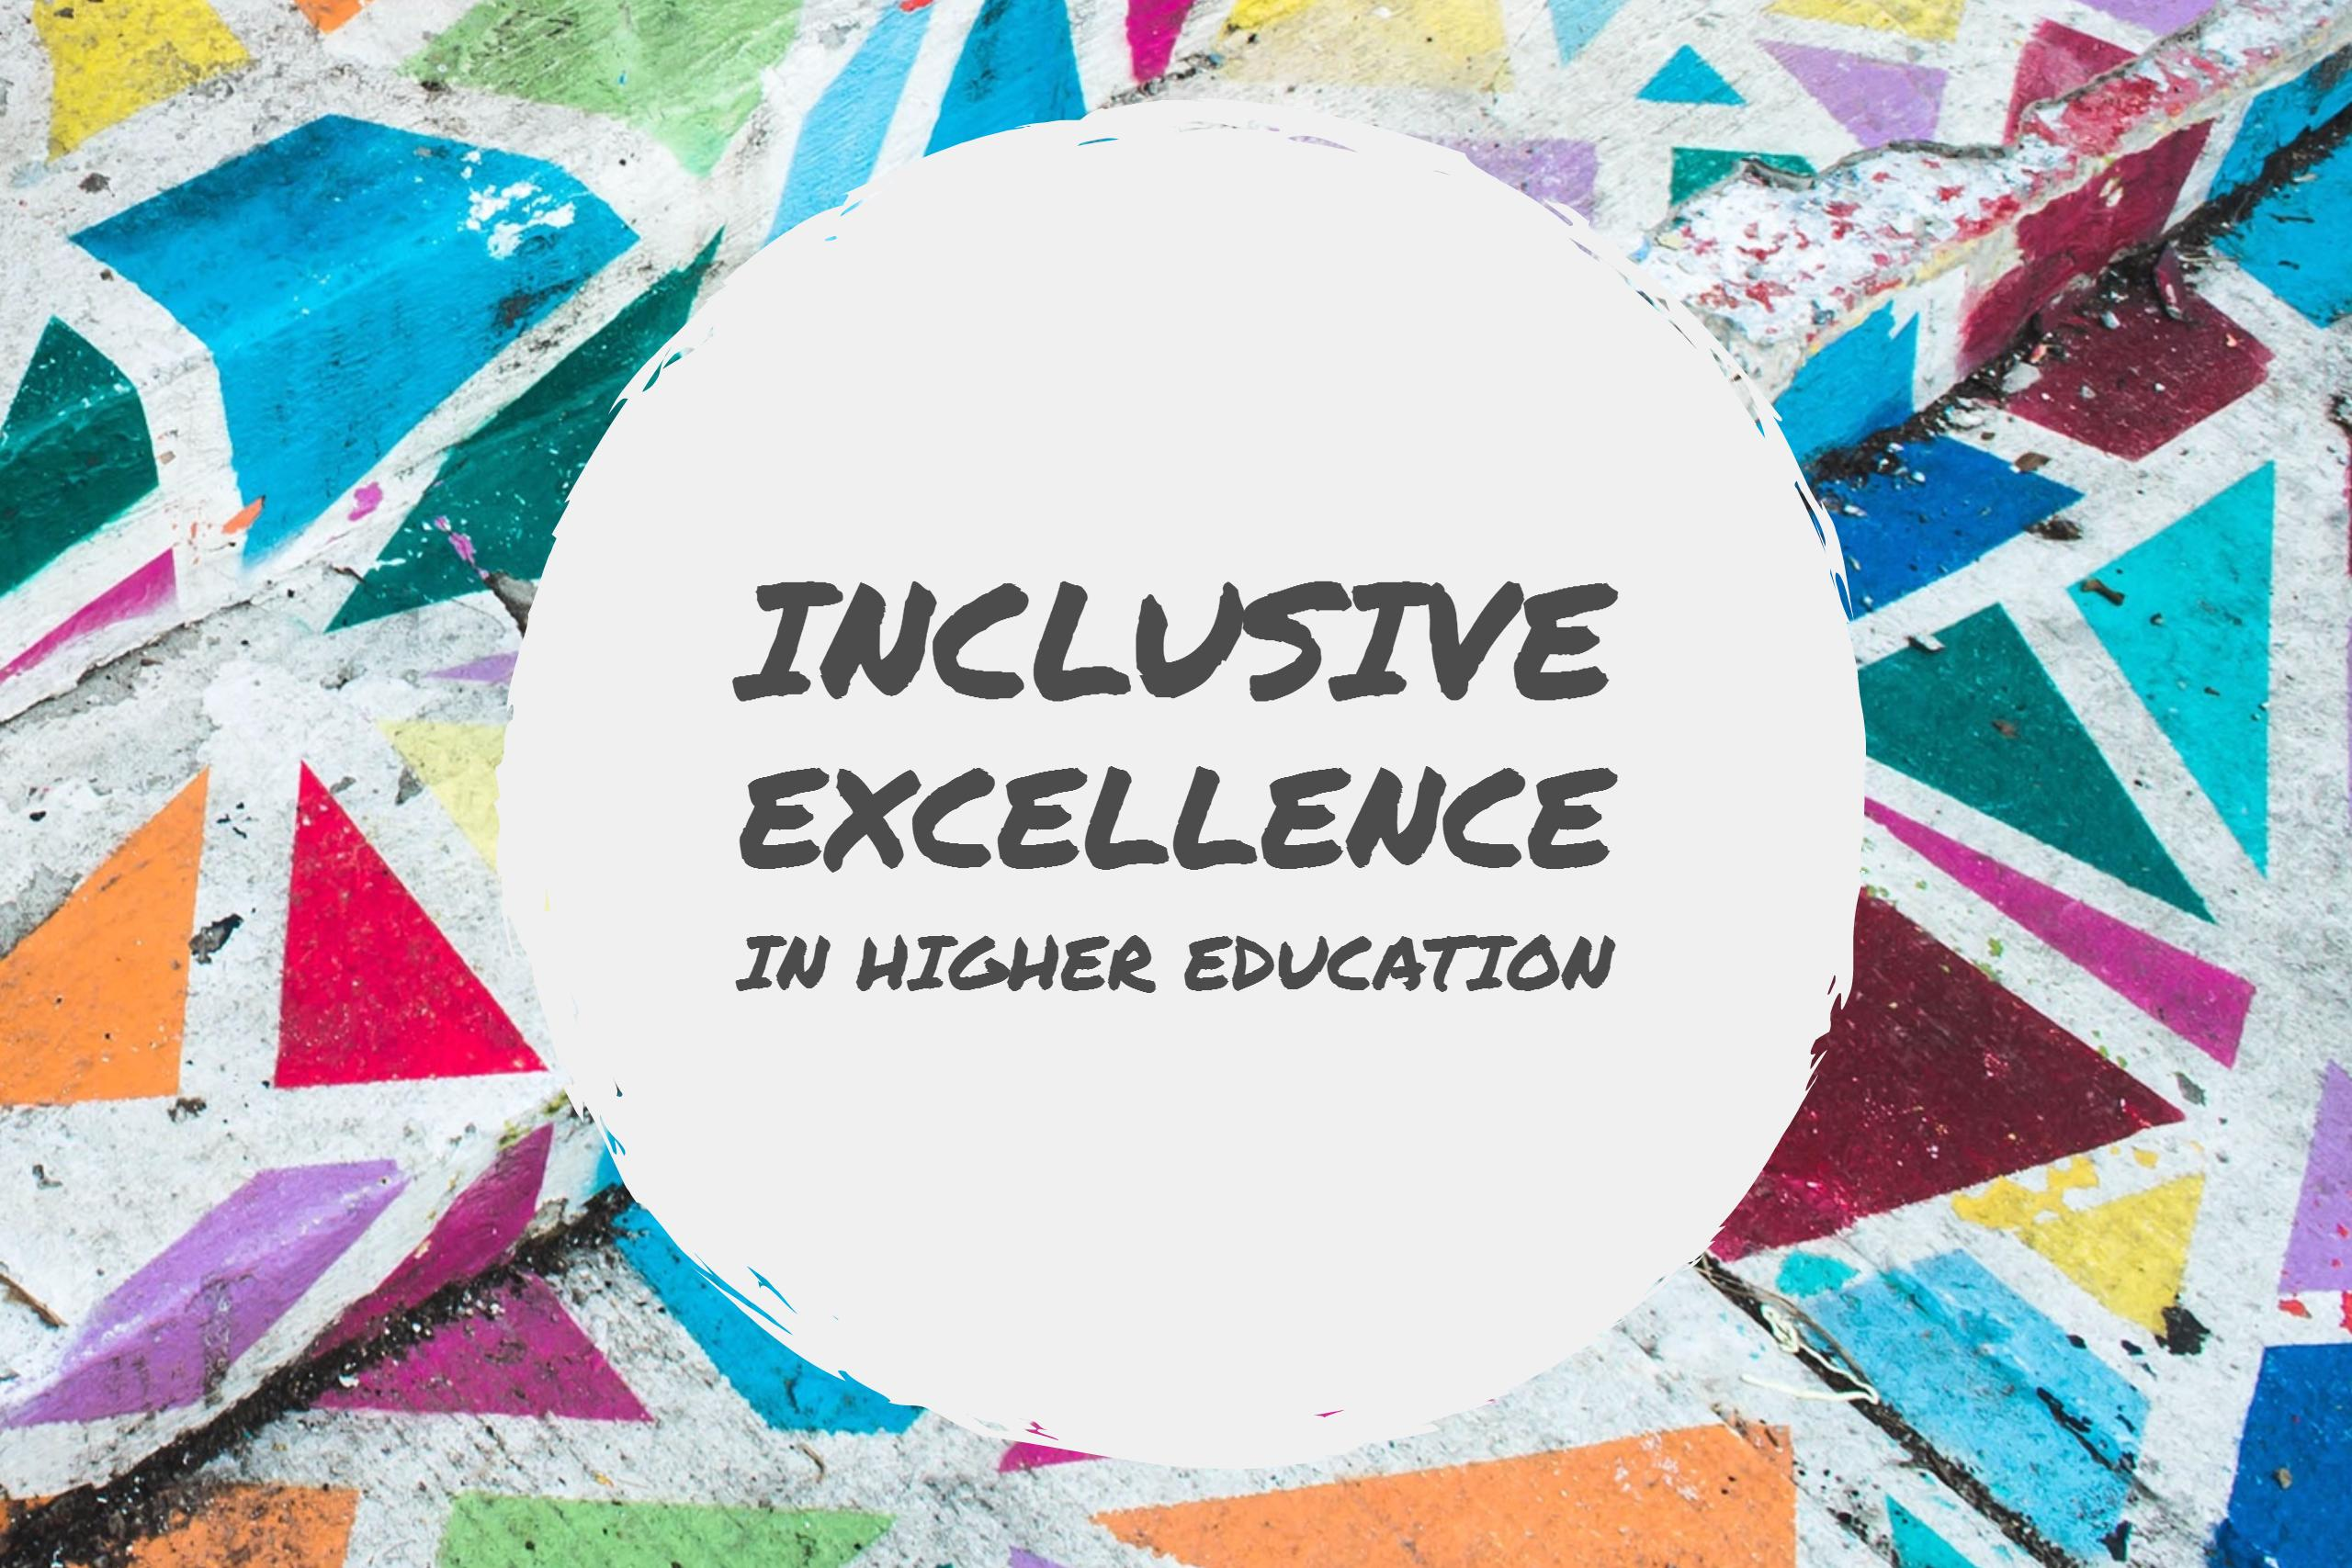 inclusive excellence in higher education